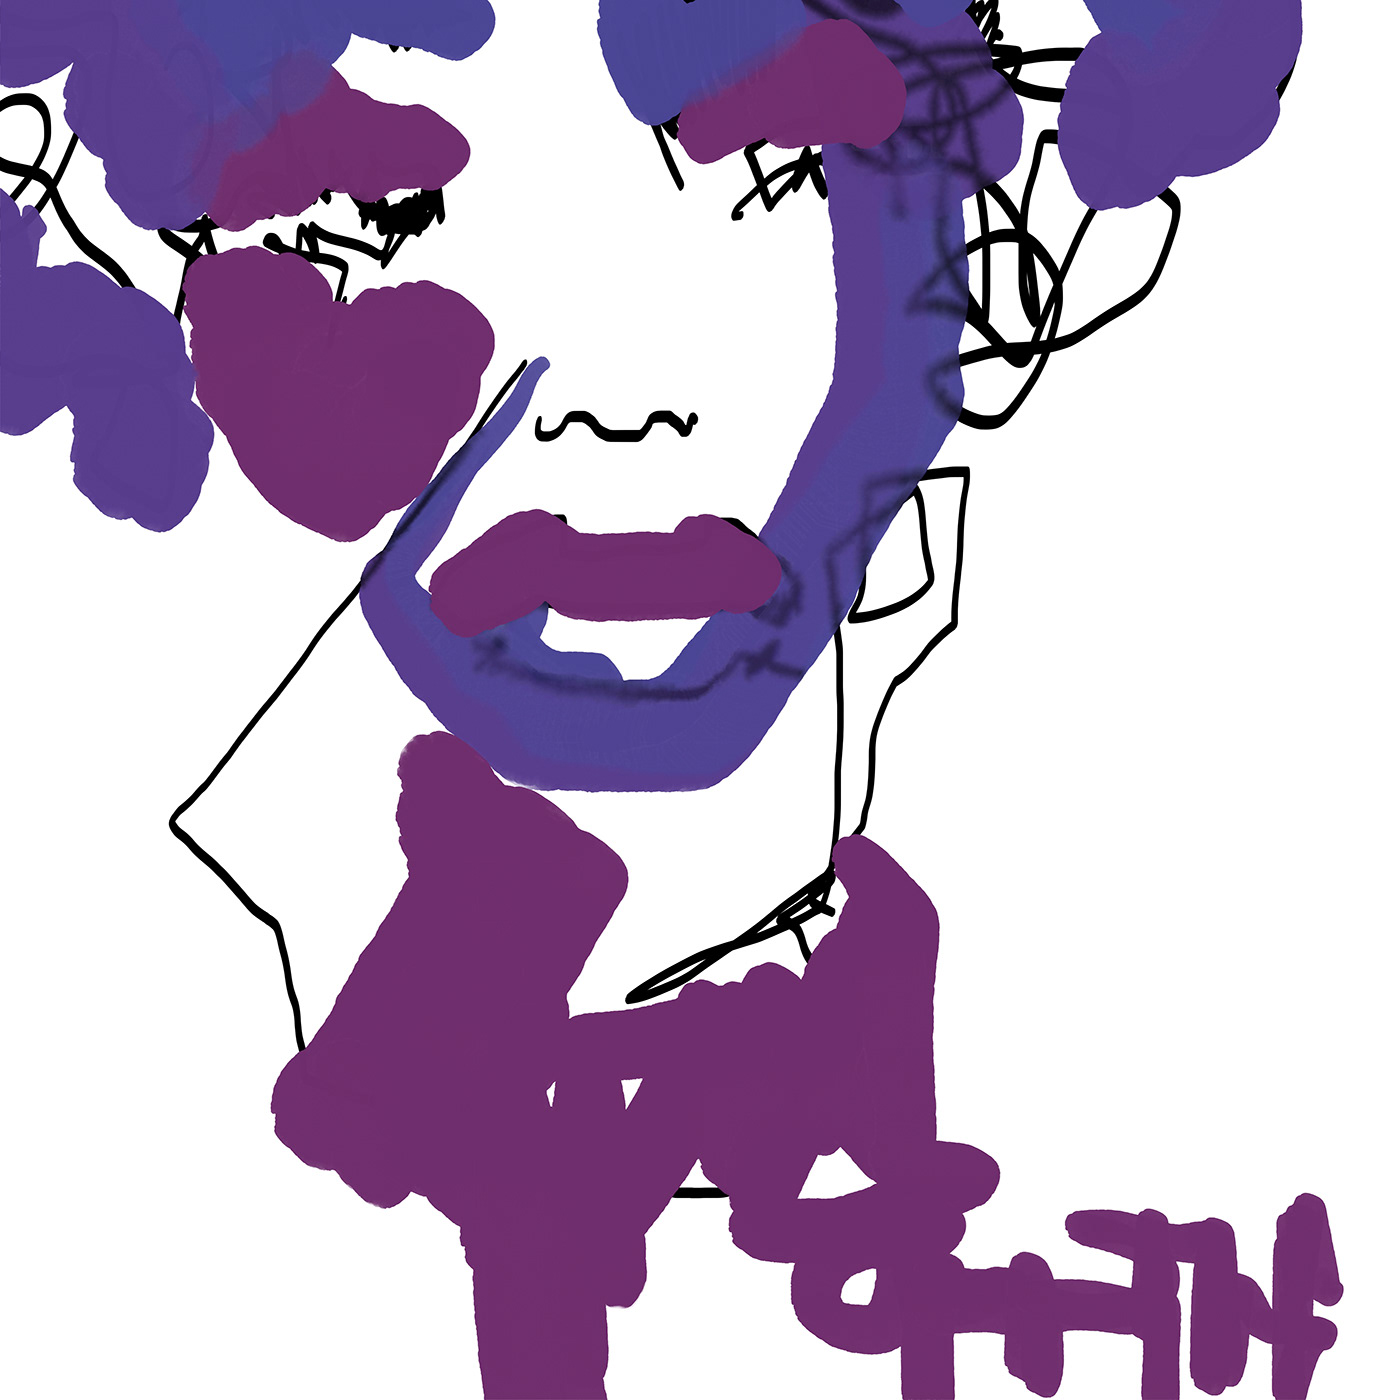 allure bird black brown canary cincinnati colour compose crown dusting ebony emotion faces fierce Heavy ivory jade Lady Liberty linework lioness lipstick lively makeup paint paisley pastel peach petals pieces pouring purple queen shapes she survive Thick violet water yellow